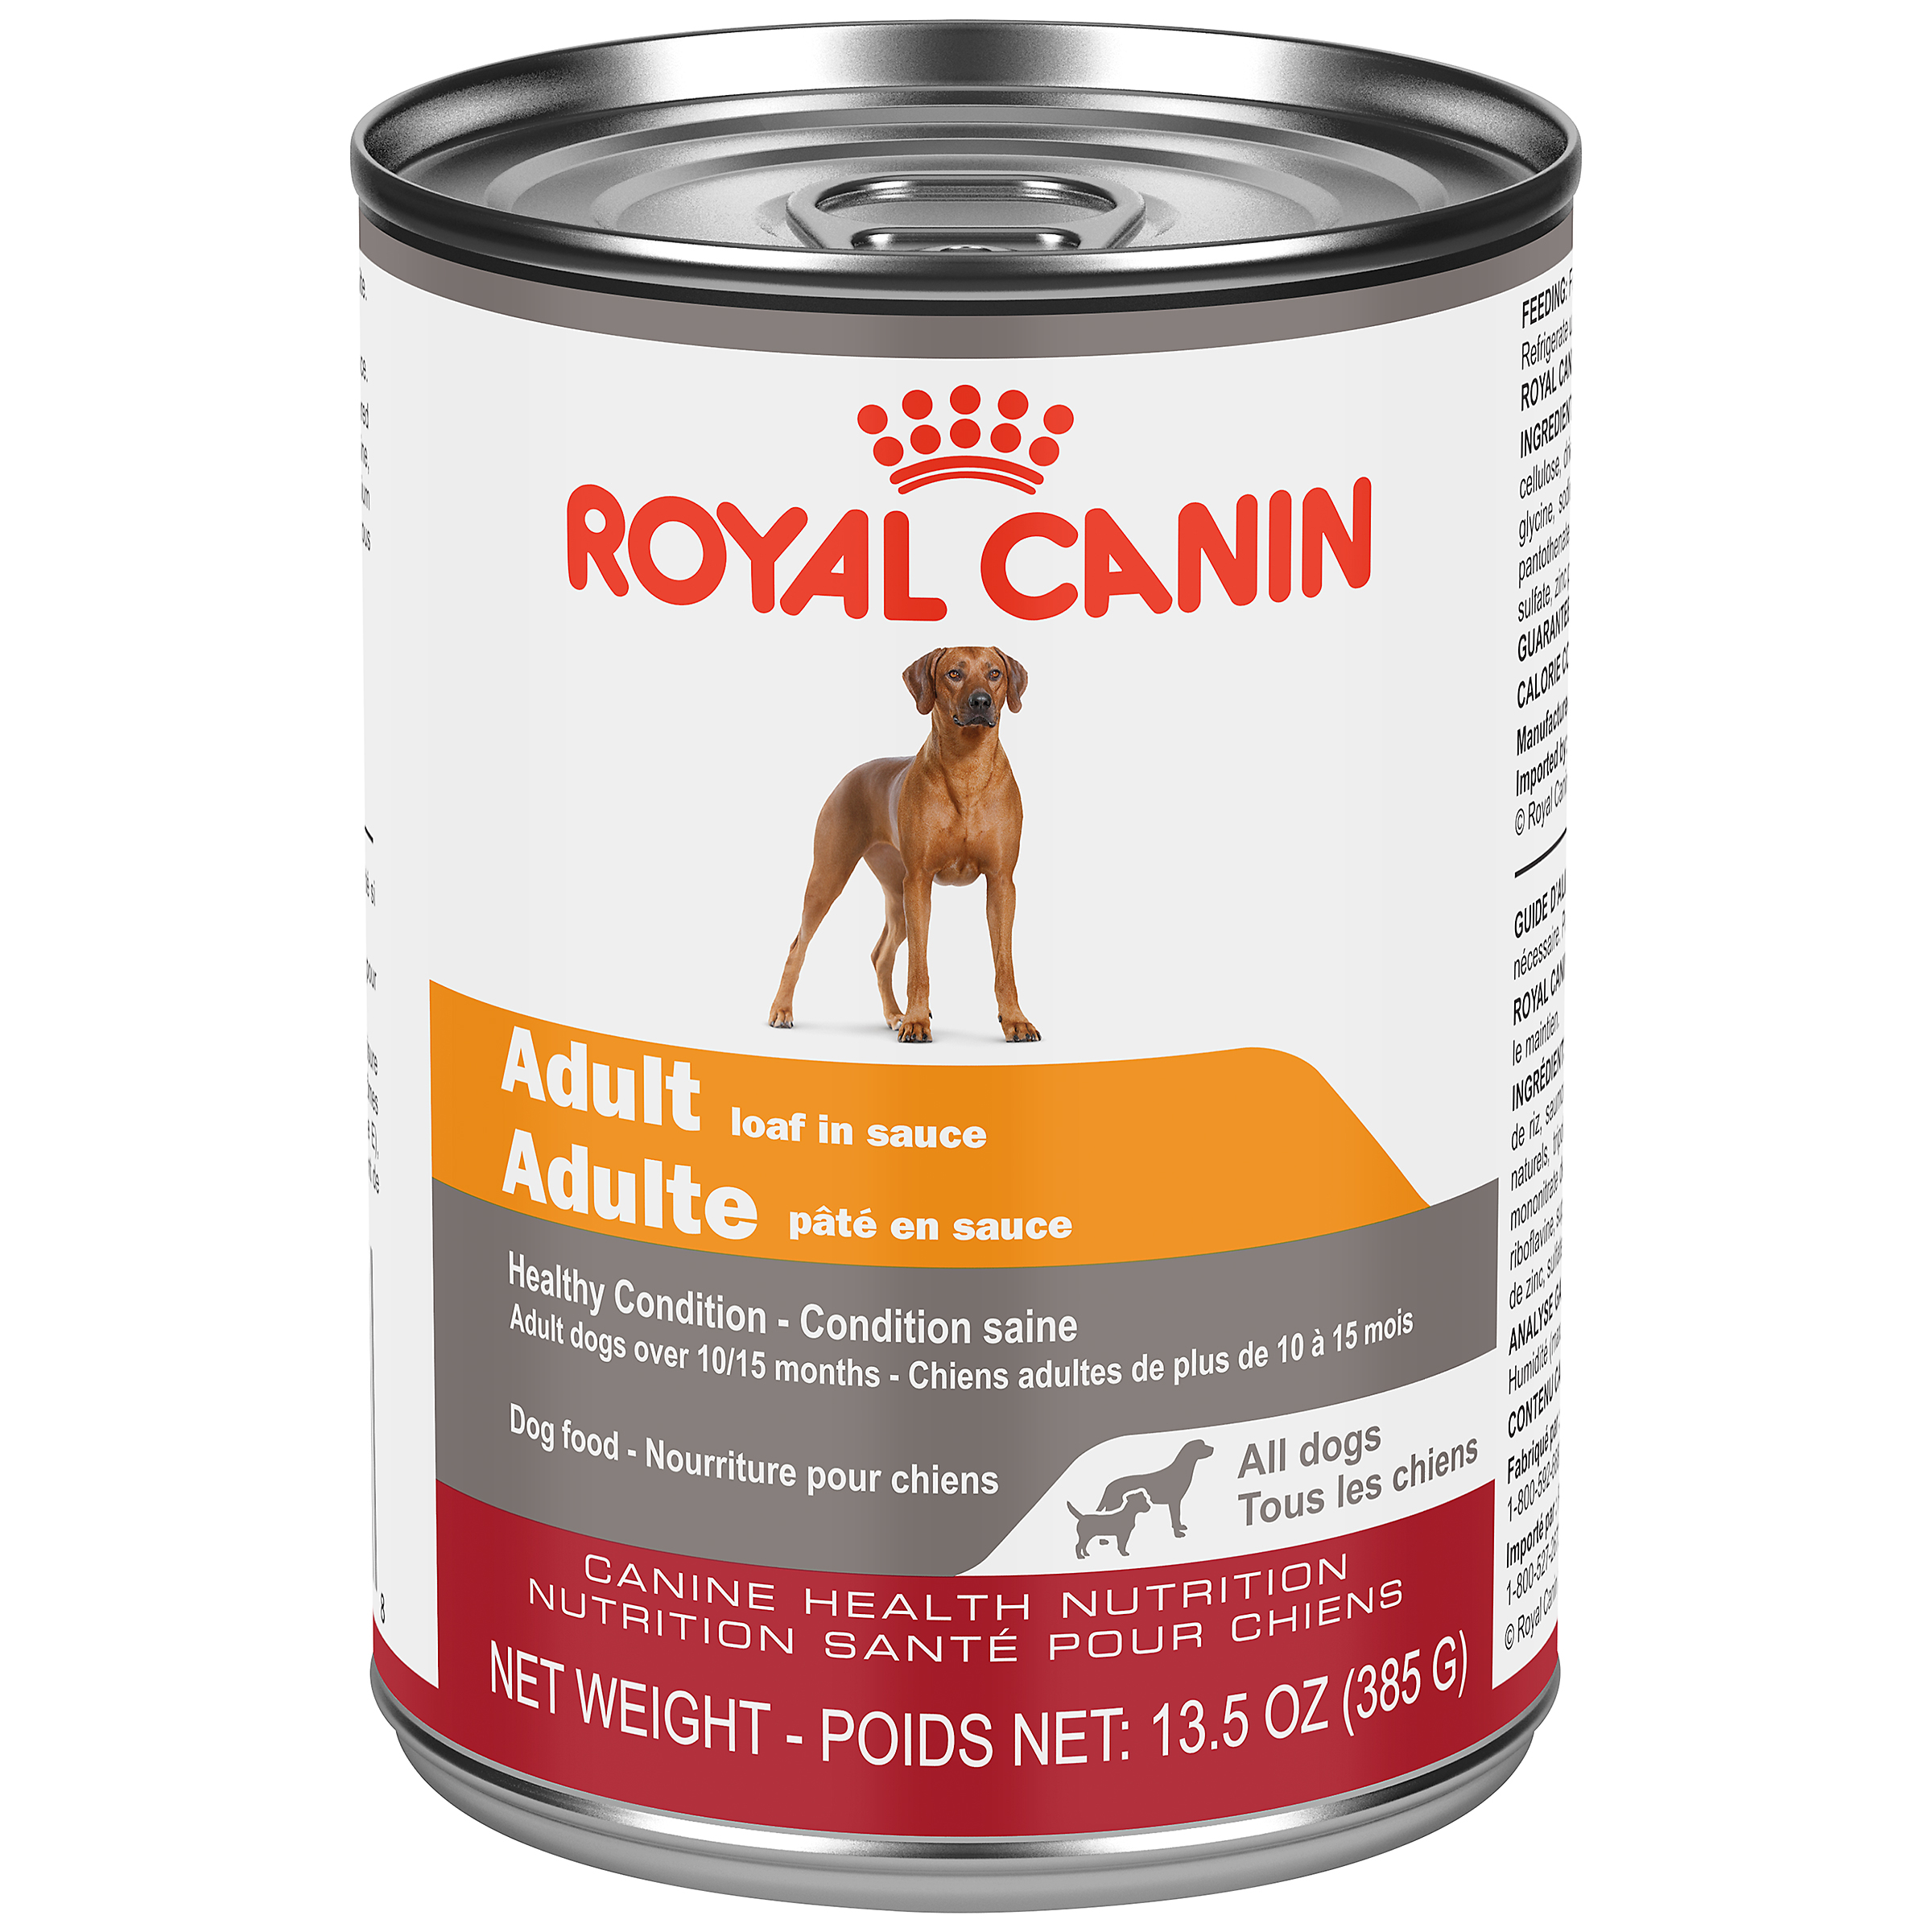 Adult Loaf Canned Dog Food